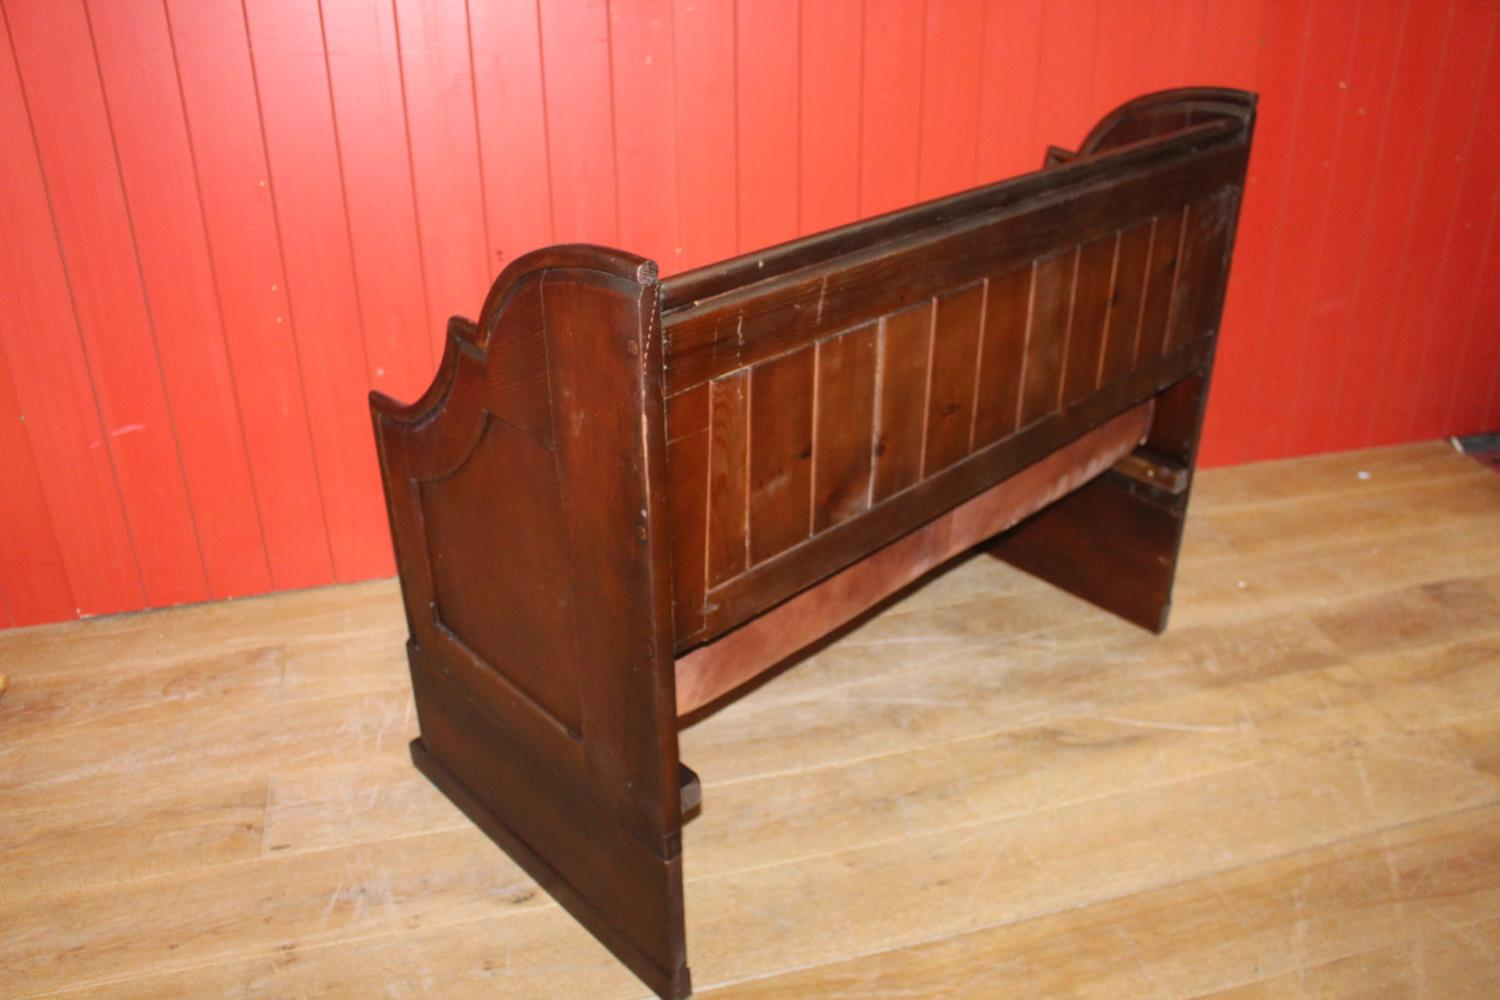 Leather upholstered wooden bench - Image 2 of 2